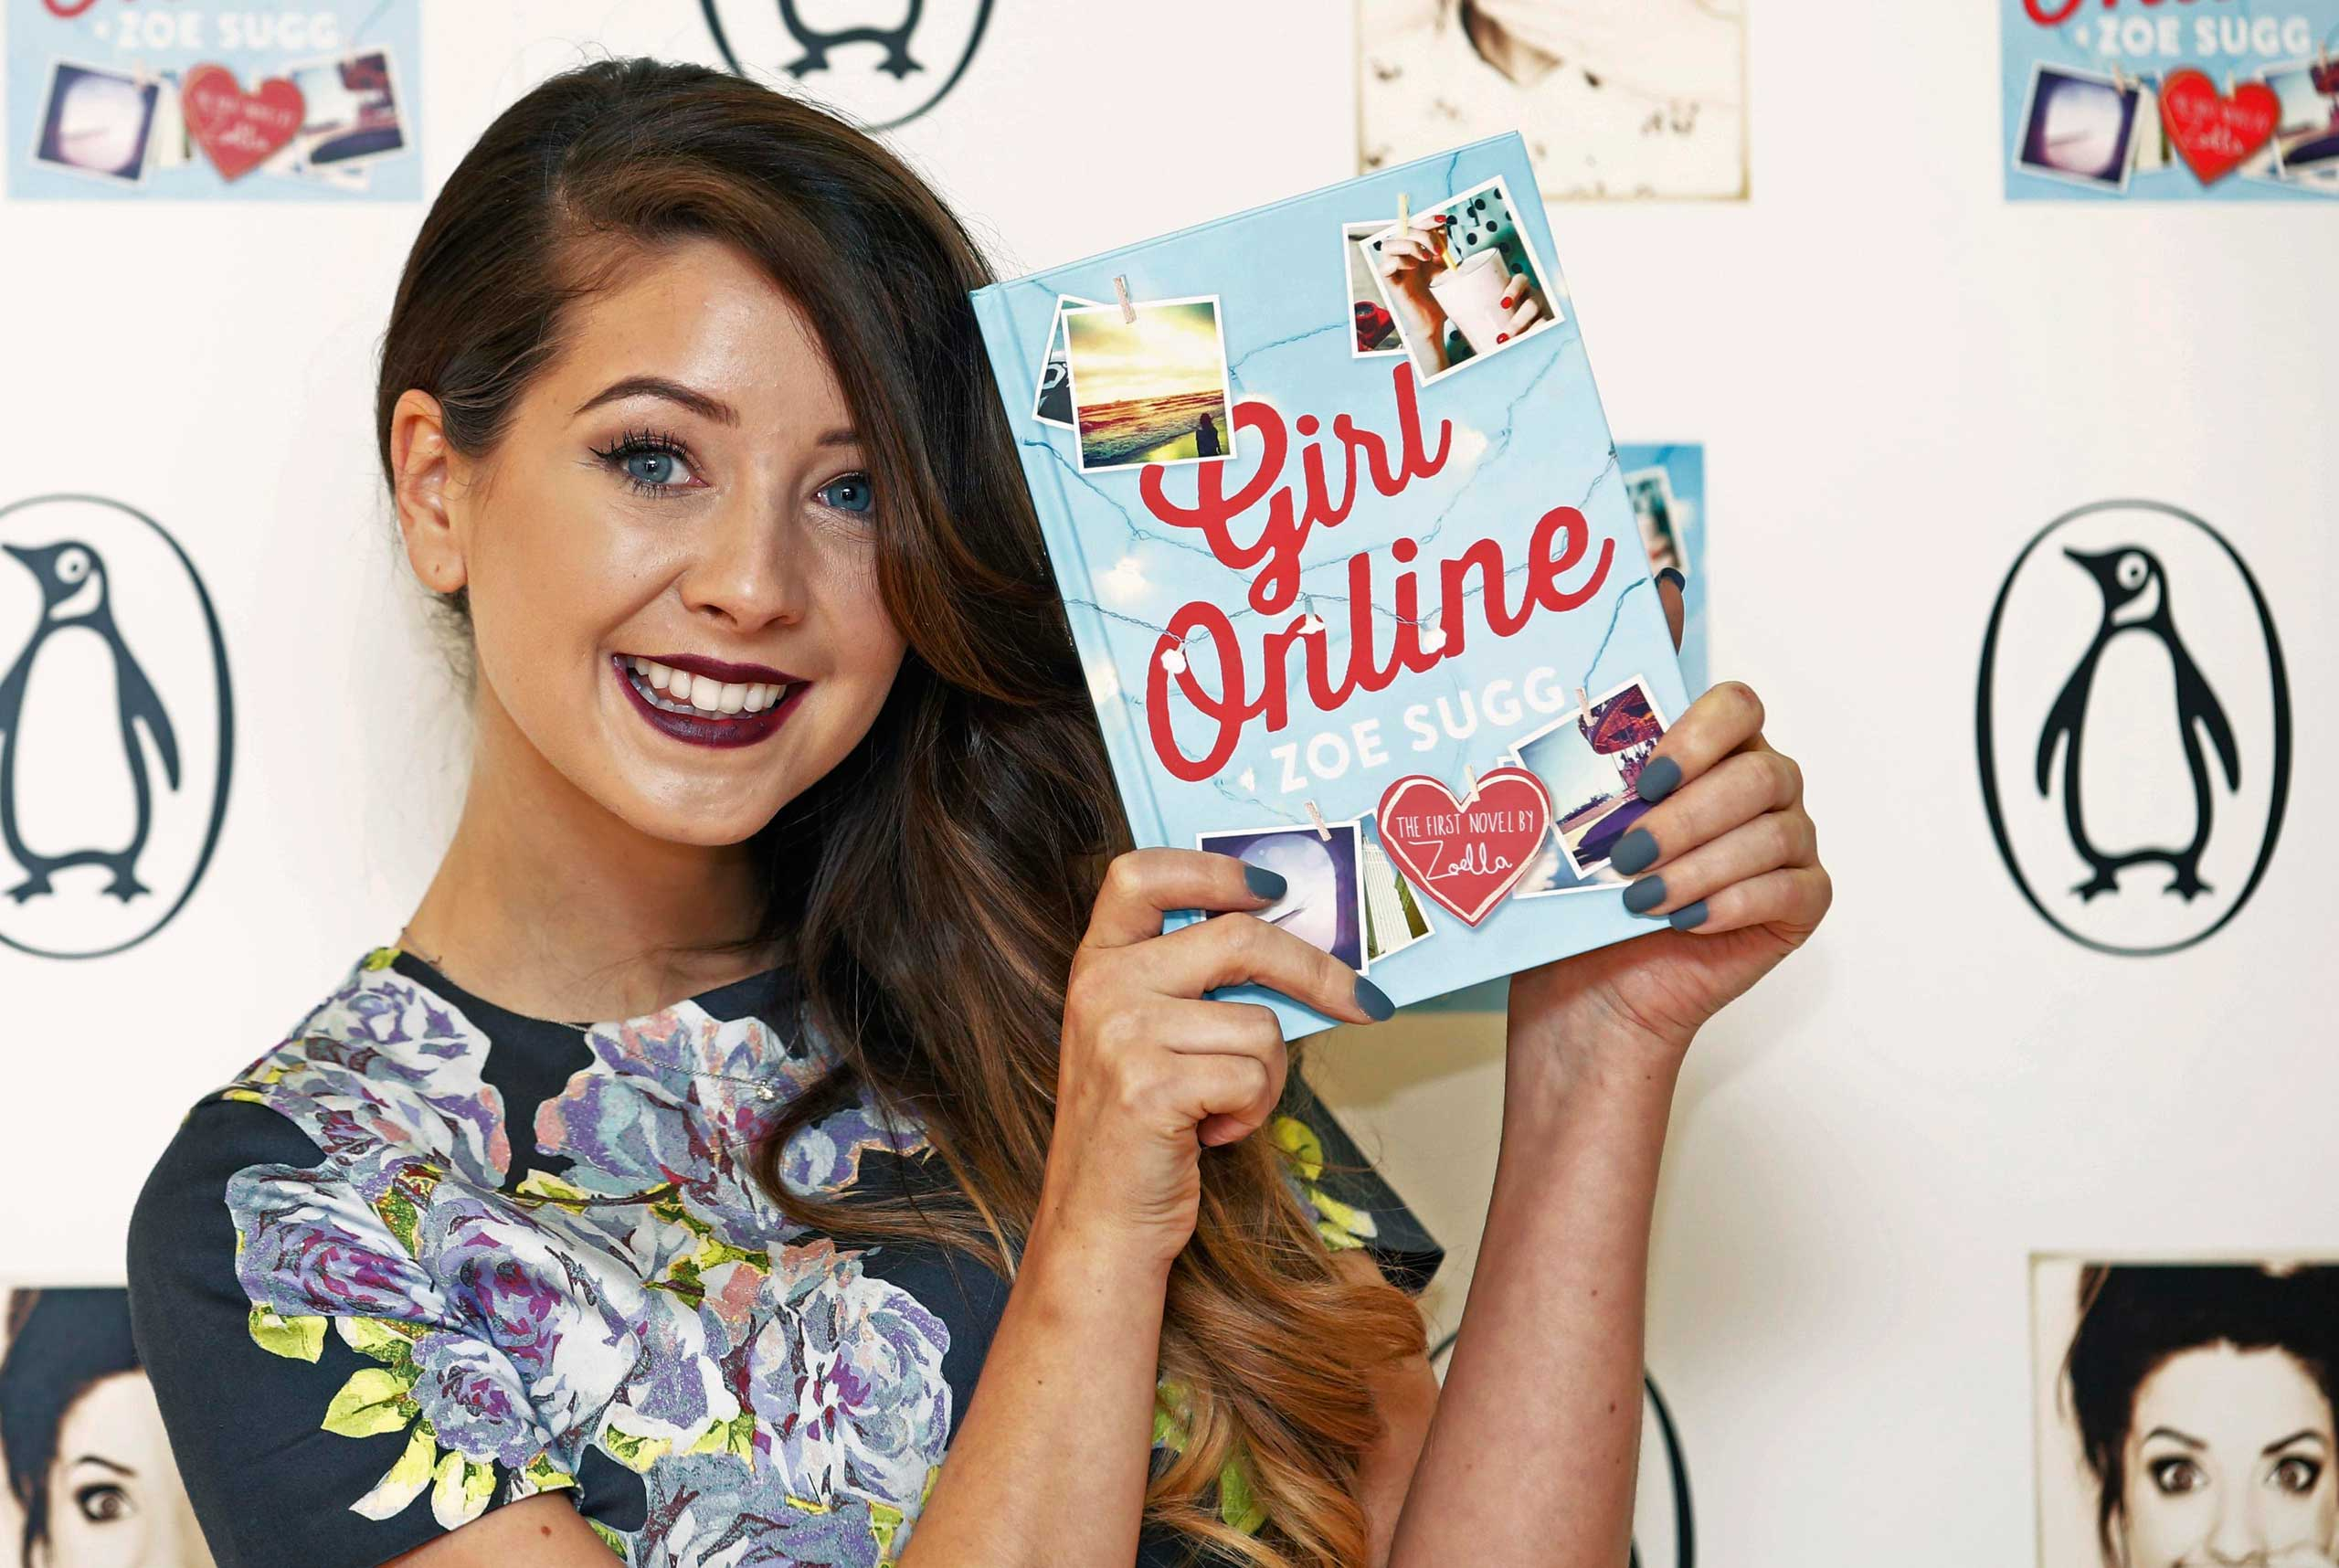 YouTube blogger Zoe Sugg, known as Zoella, poses during a photocall for her debut novel  Girl Online  in London Nov. 24, 2014.